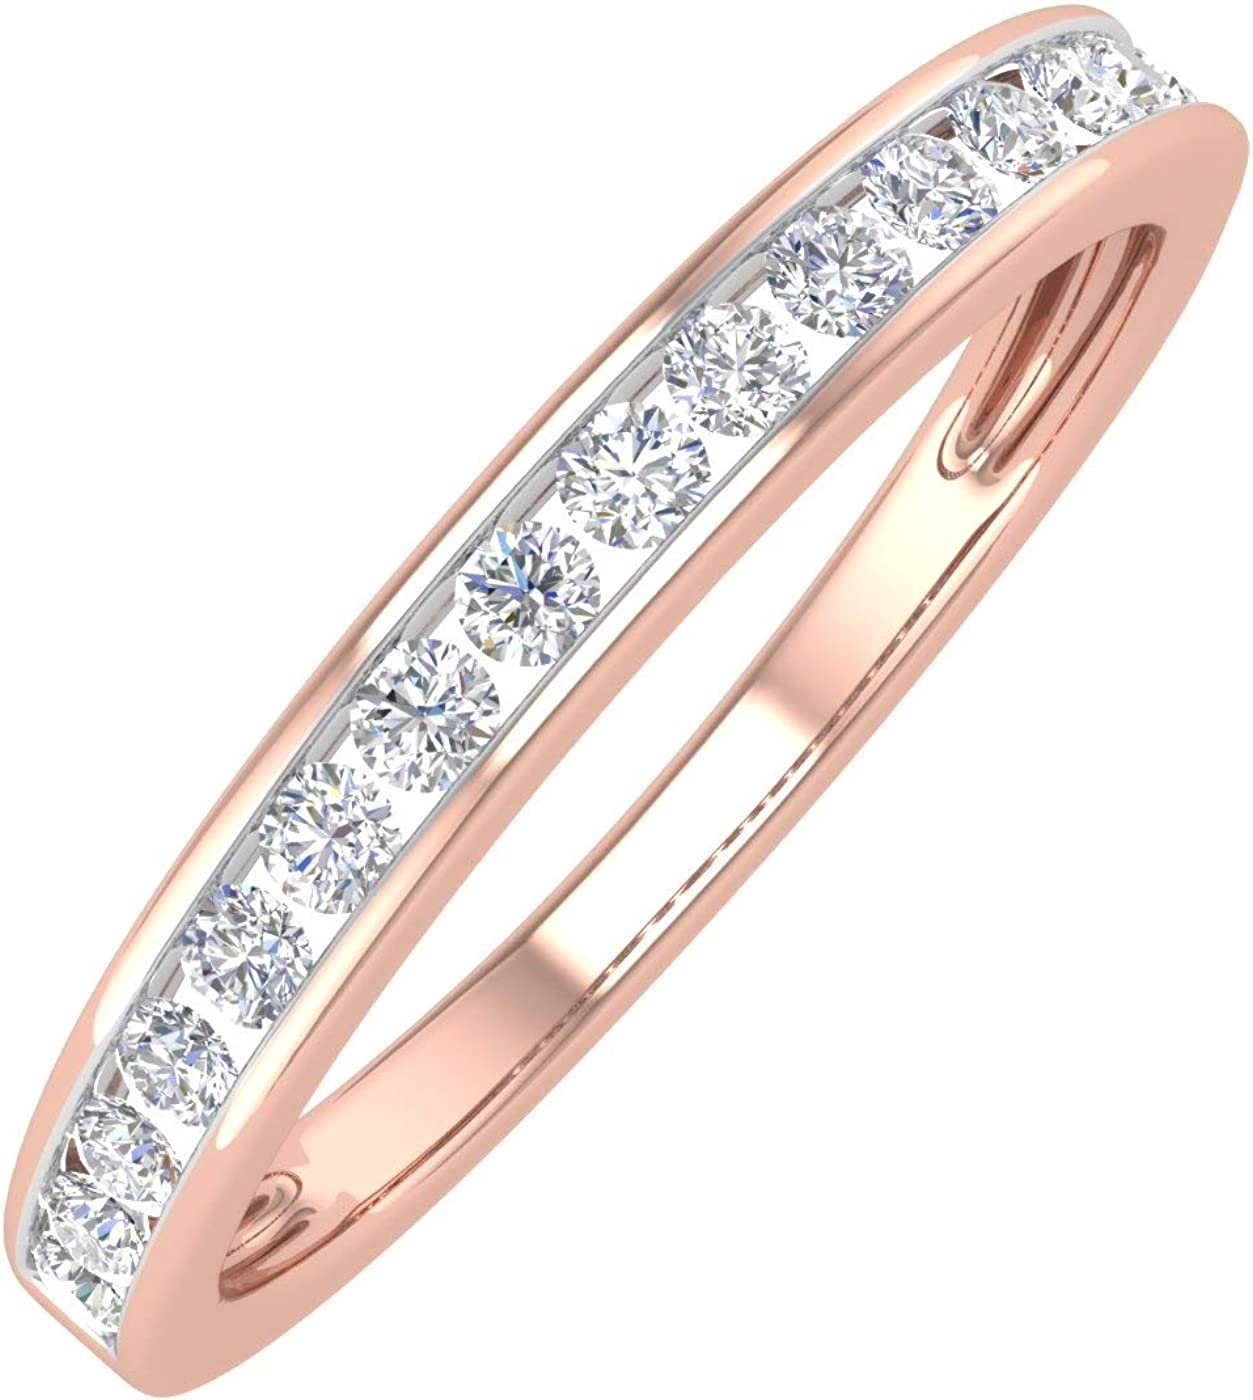 1 4 Carat Channel Set Diamond Anniversary Band Wedding in Daily bargain Some reservation sale Ladies